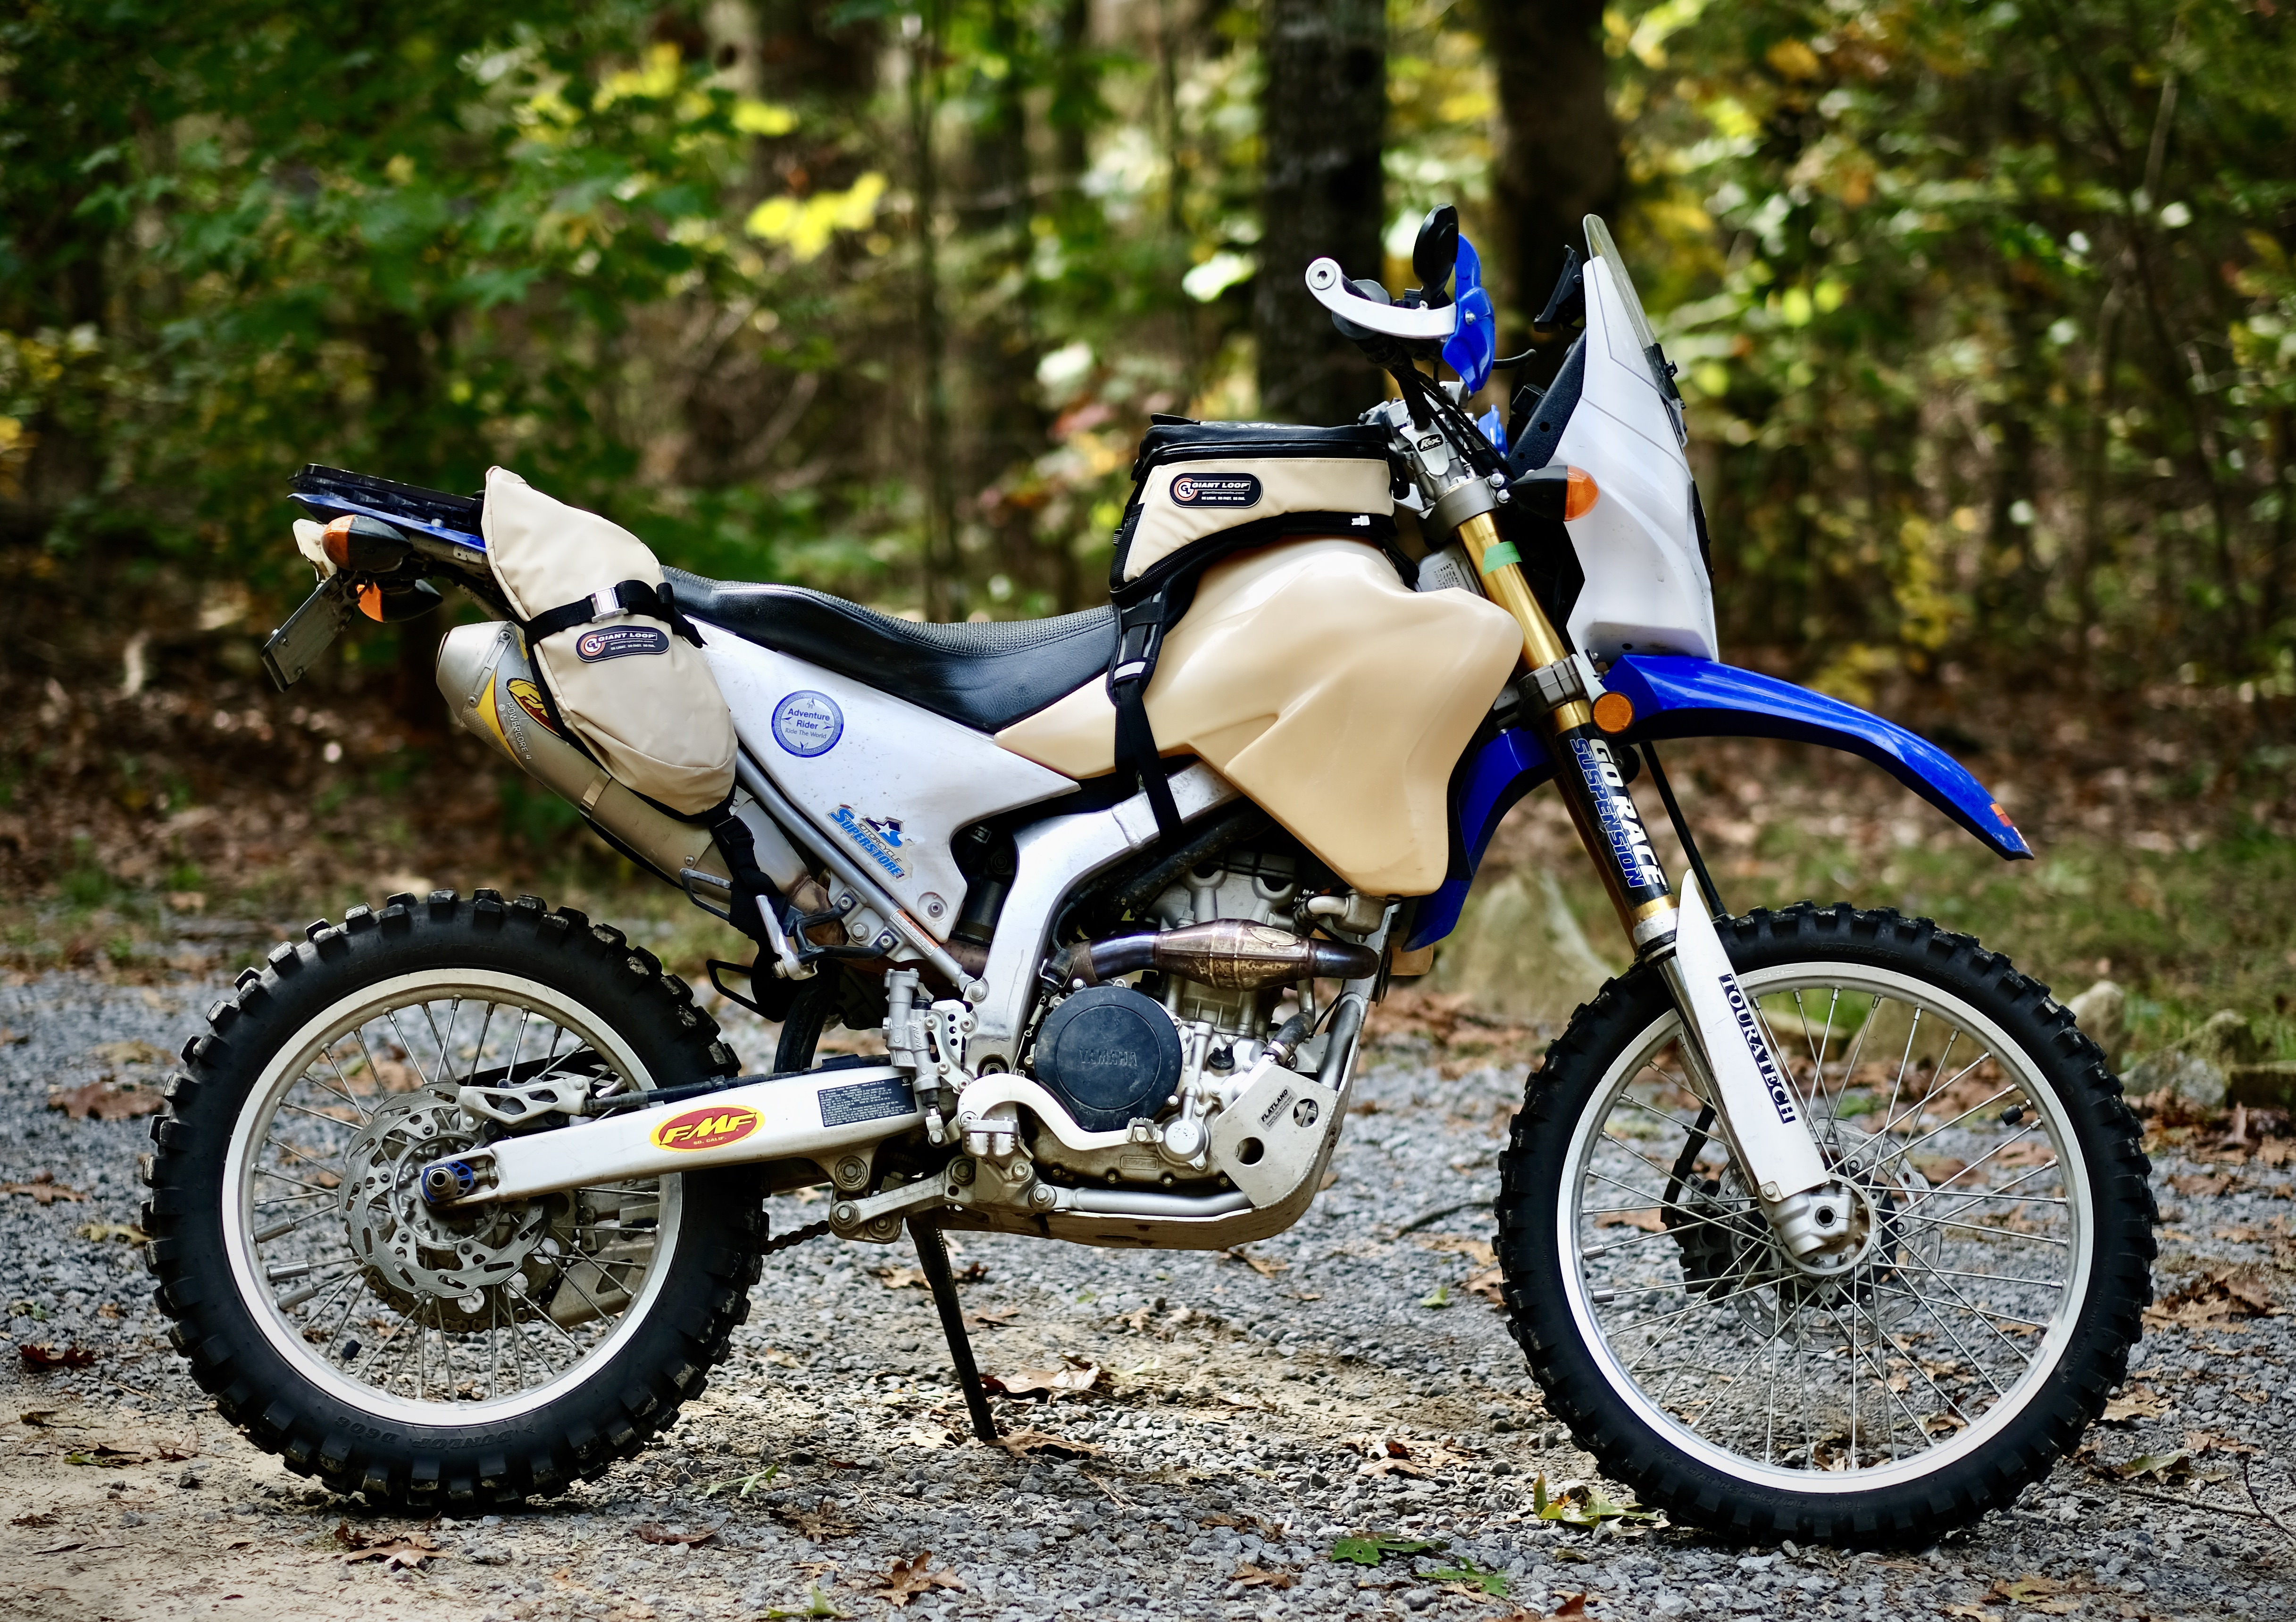 MoJavi Saddlebag and Diablo Tank Bag on a Yamaha WR250R